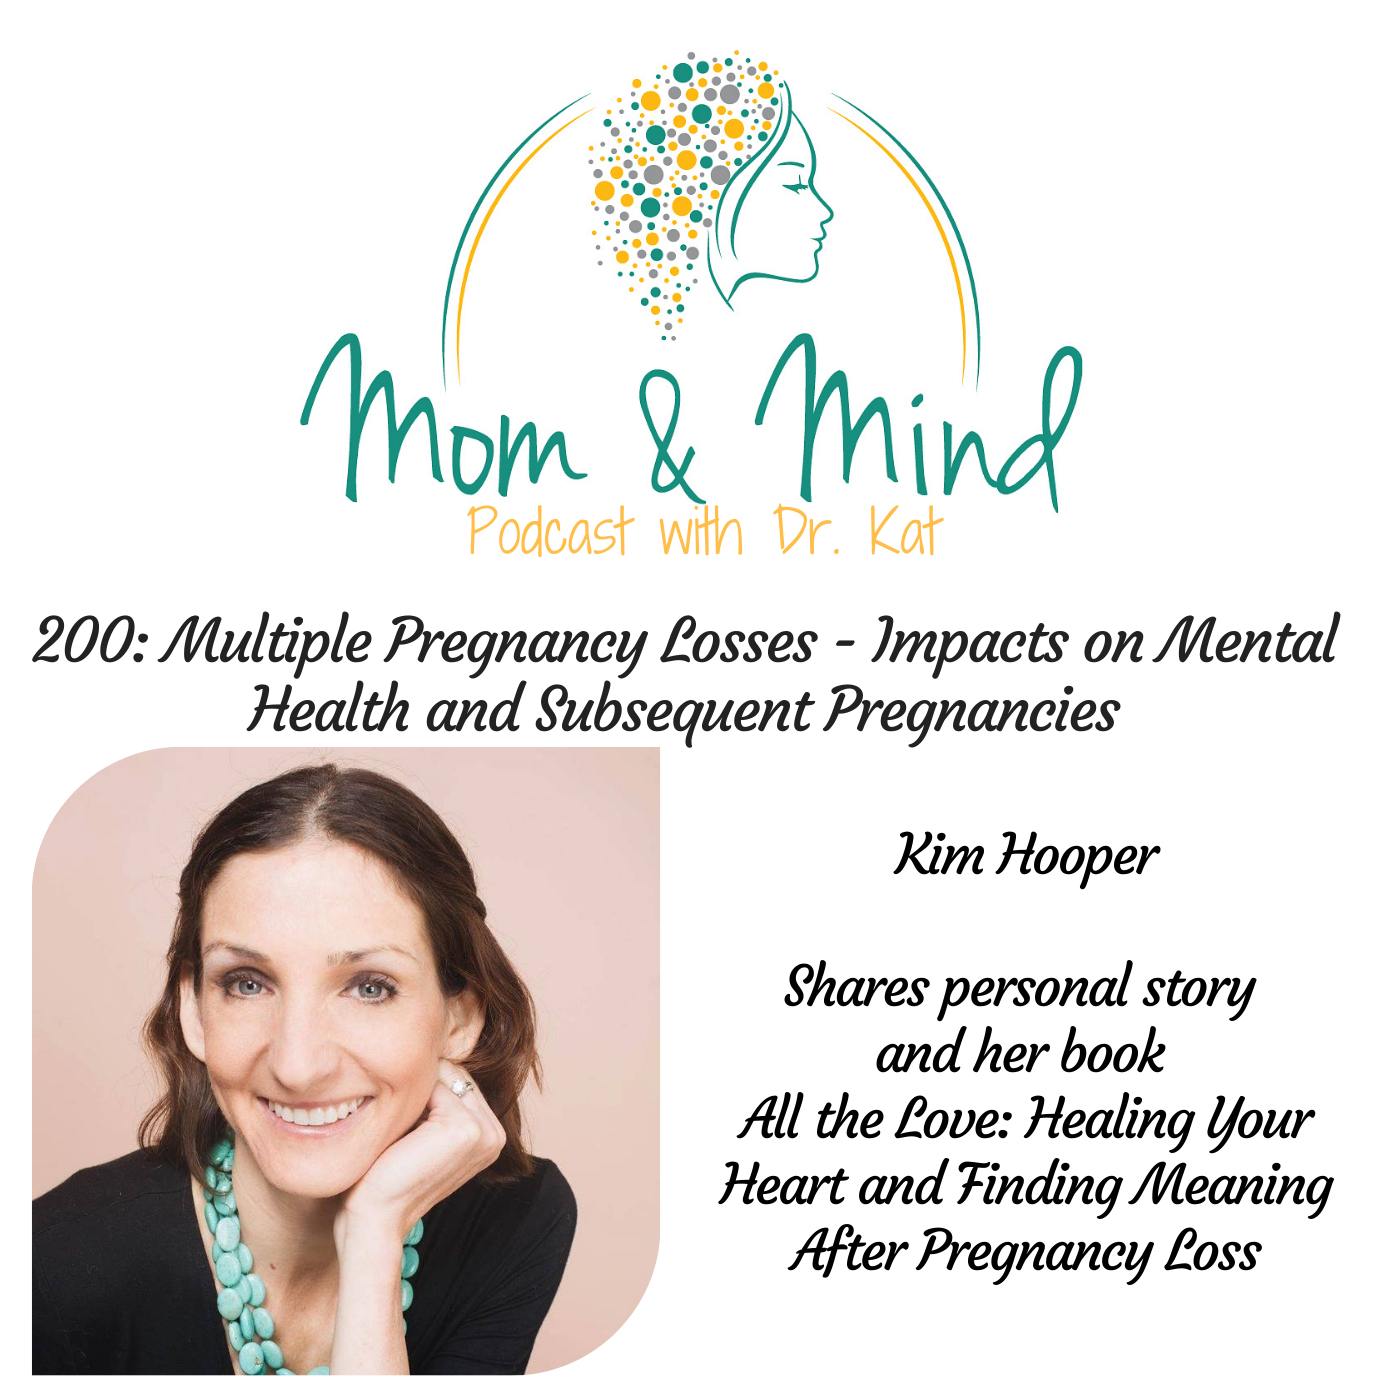 200: Multiple Pregnancy Losses - Impacts on Mental Health and Subsequent Pregnancies